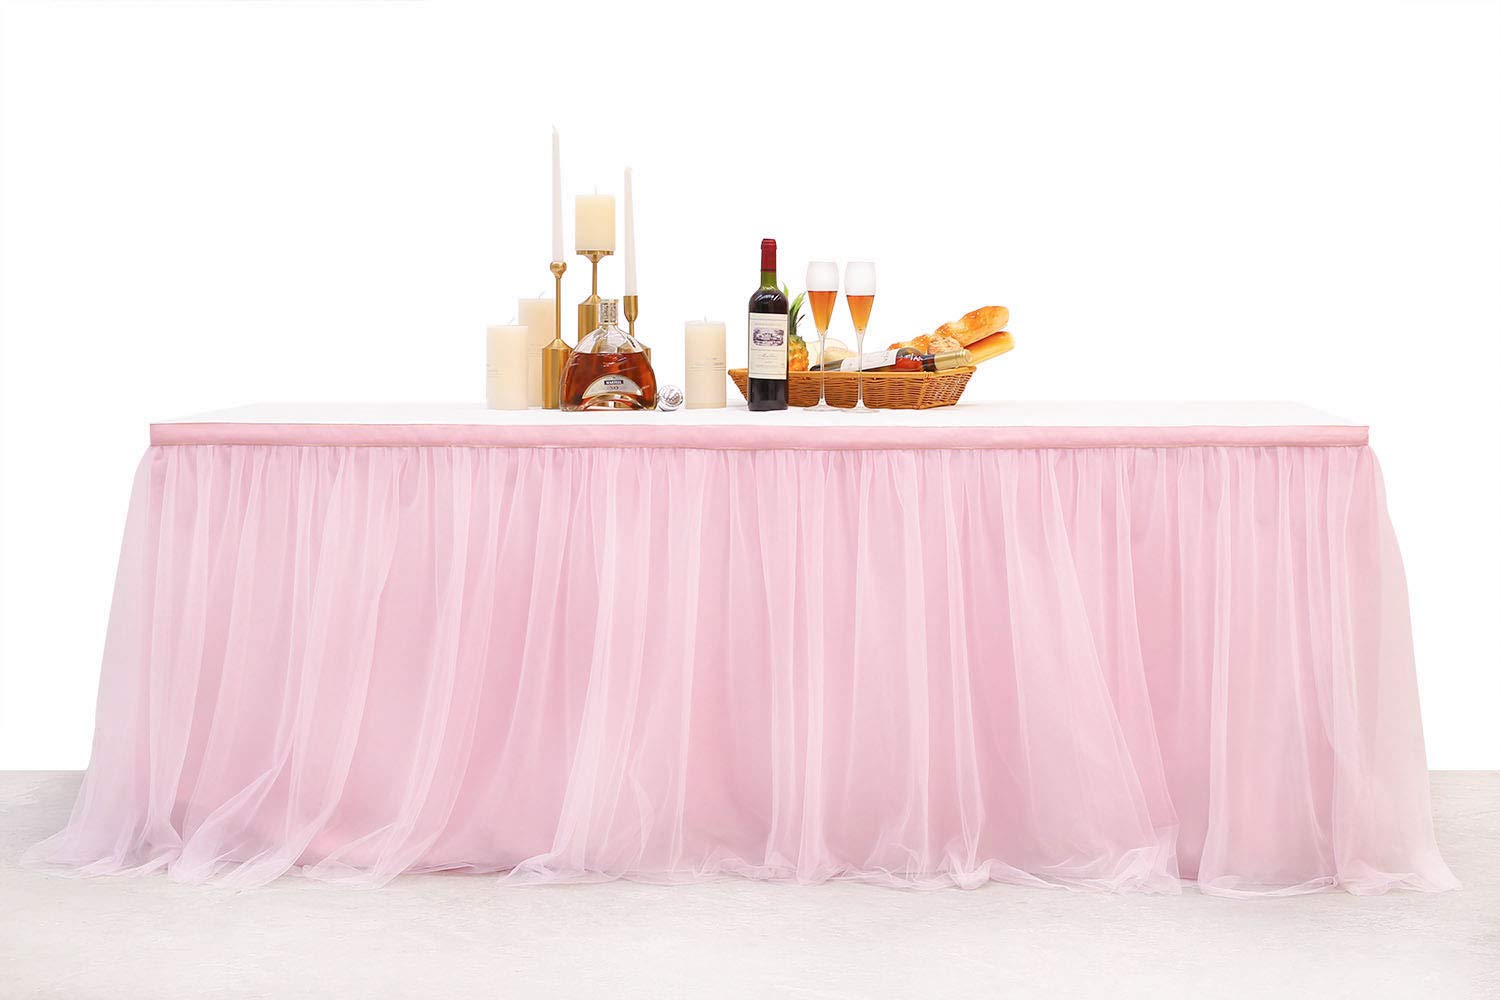 Table Skirts 3Yard 9FT High-End Gold Brim Anti-Wrinkle Pink Tulle Tutu Tablecloth Long or Round Table Festival Decoration for Wedding, Baby Show, Birthday Party, Home Party. (Pink, 9FT)